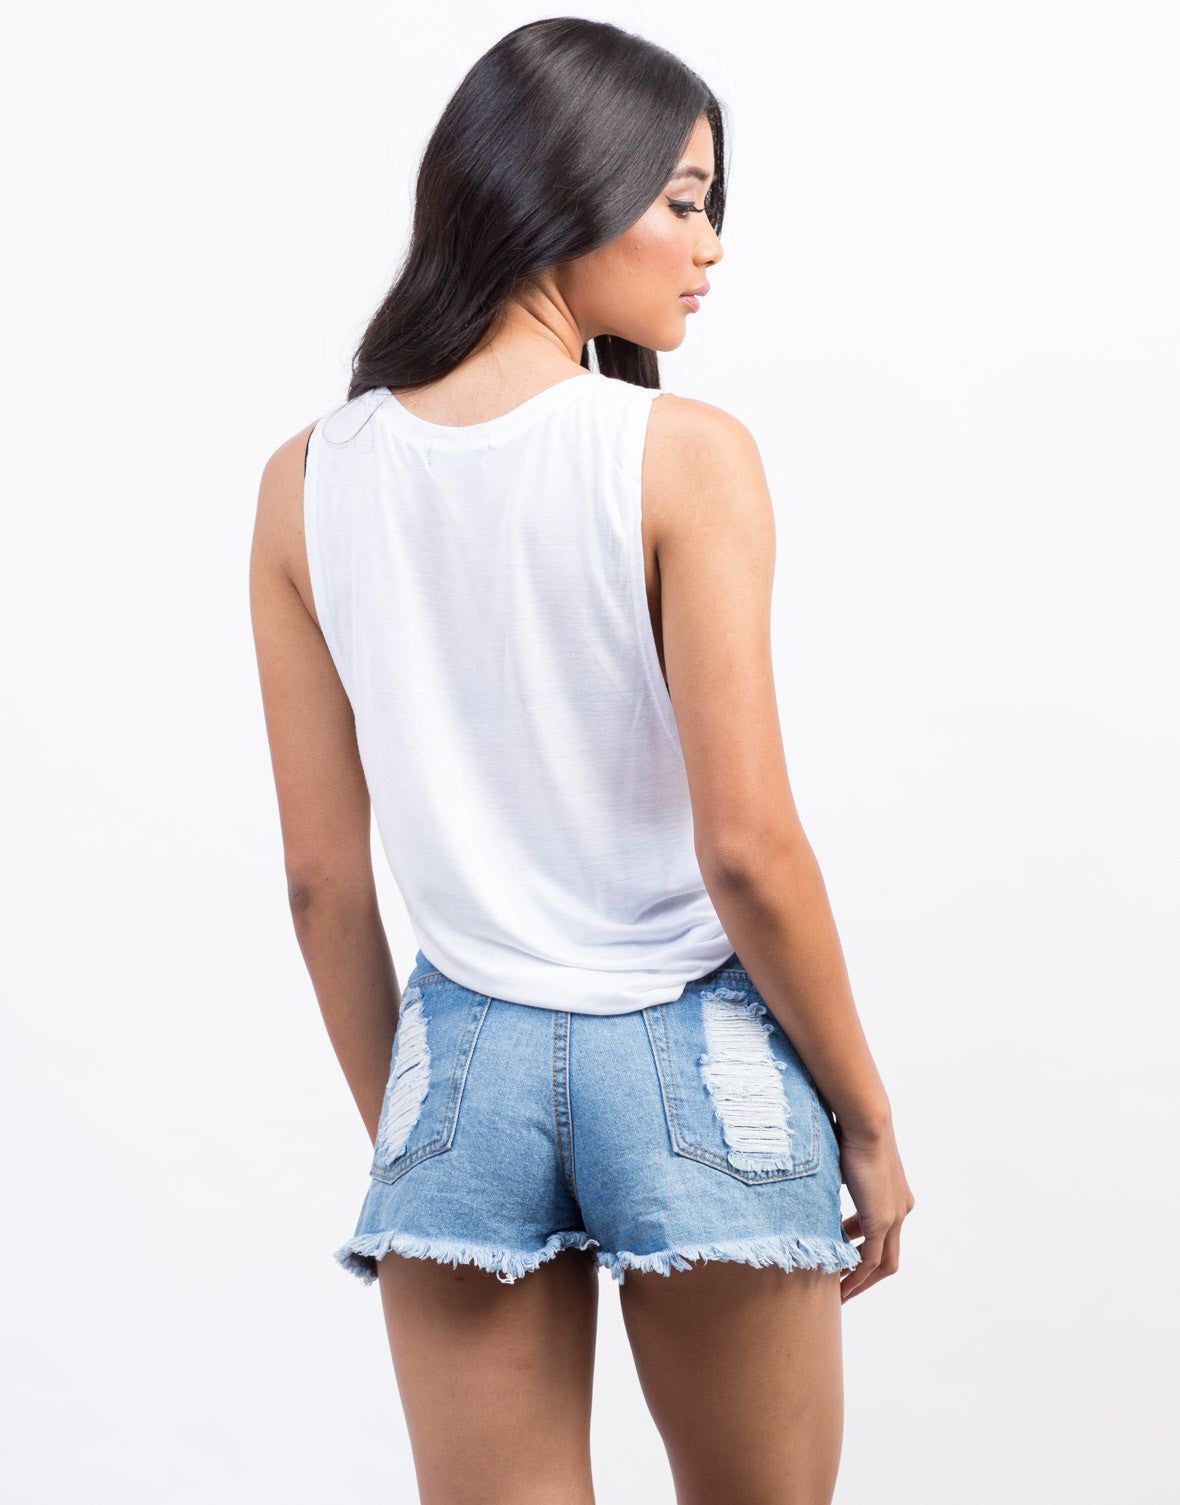 Back View of Cinched Sides Muscle Tee